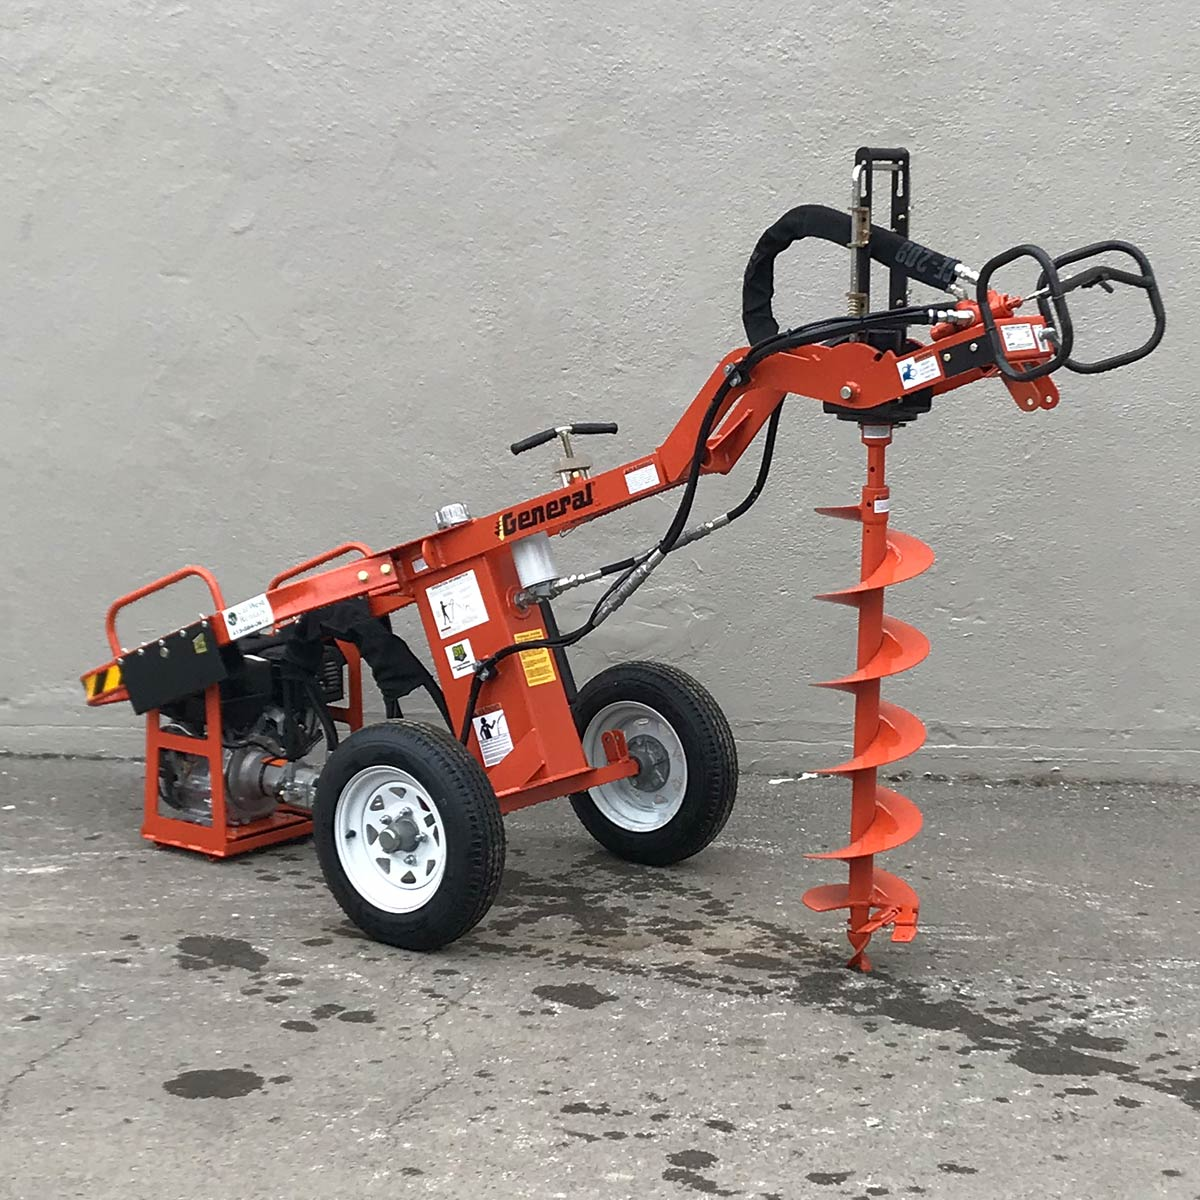 Towable Hydraulic Auger | Cal-West Rentals